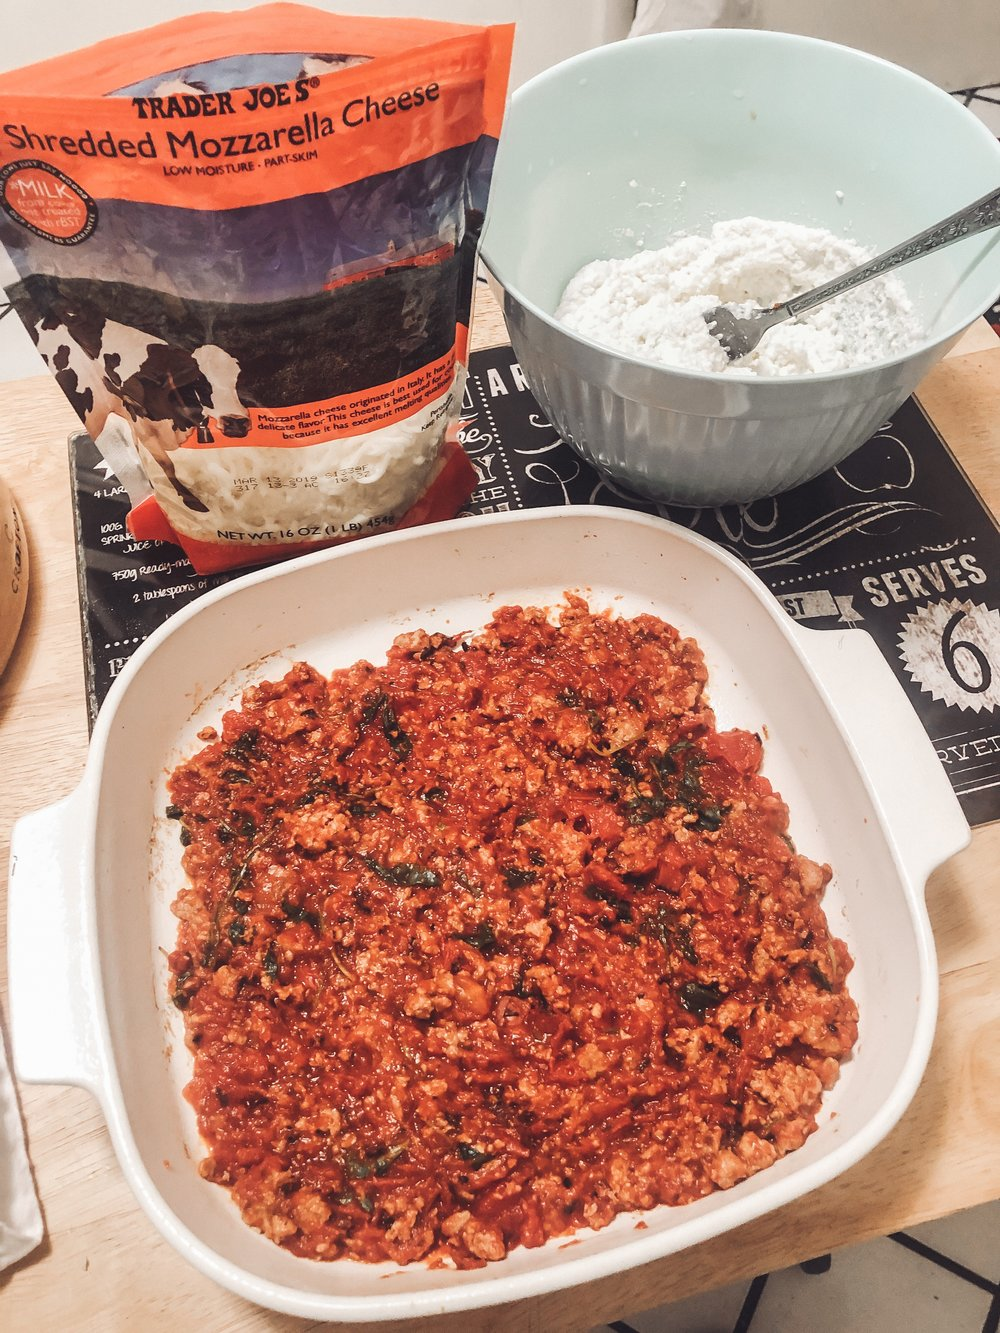 Layer 1, turkey ground meat sauce. I added spinach to my tomato sauce.